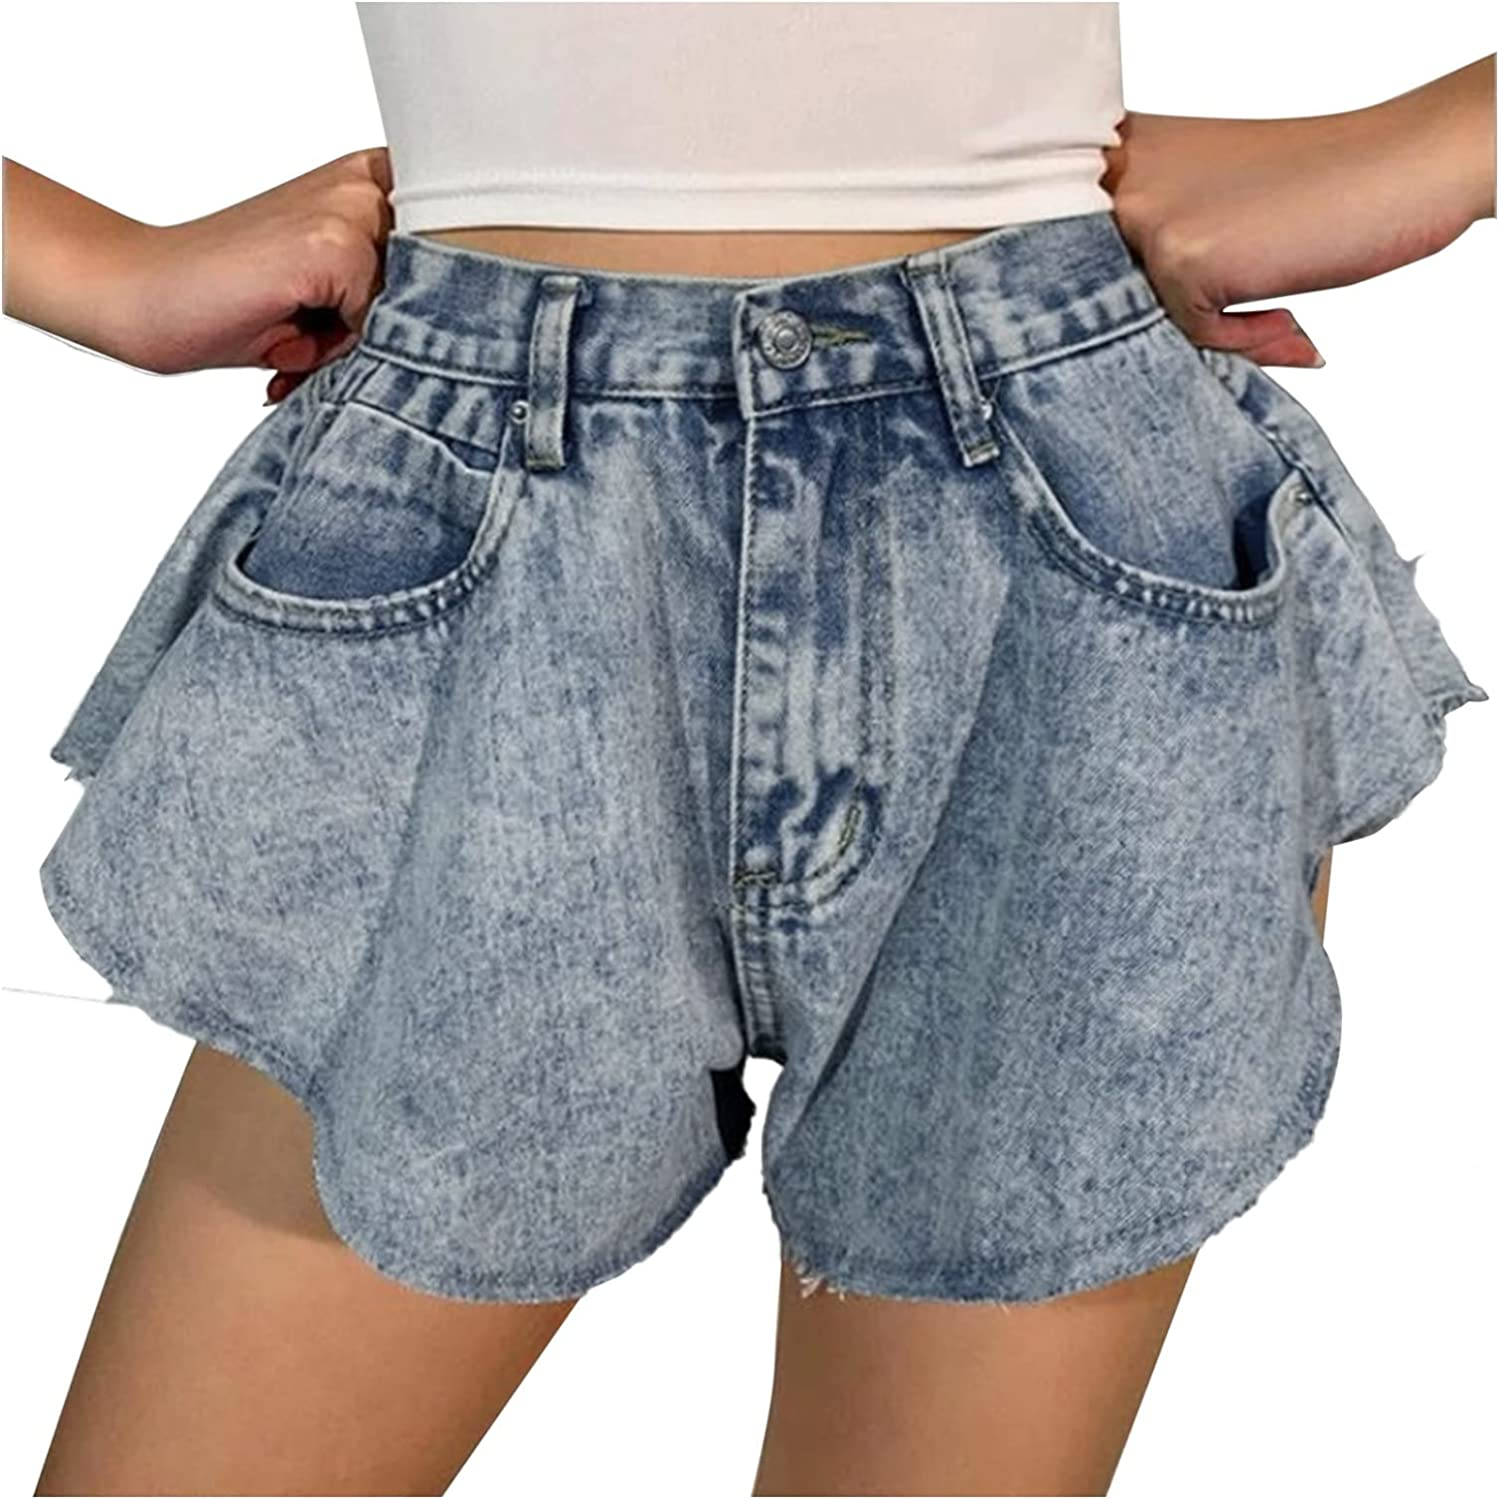 Fashion Denim Shorts for Women High Waisted Ruffle Distressed Jeans Shorts Solid Color Ripped Pockets Loose Hot Pants